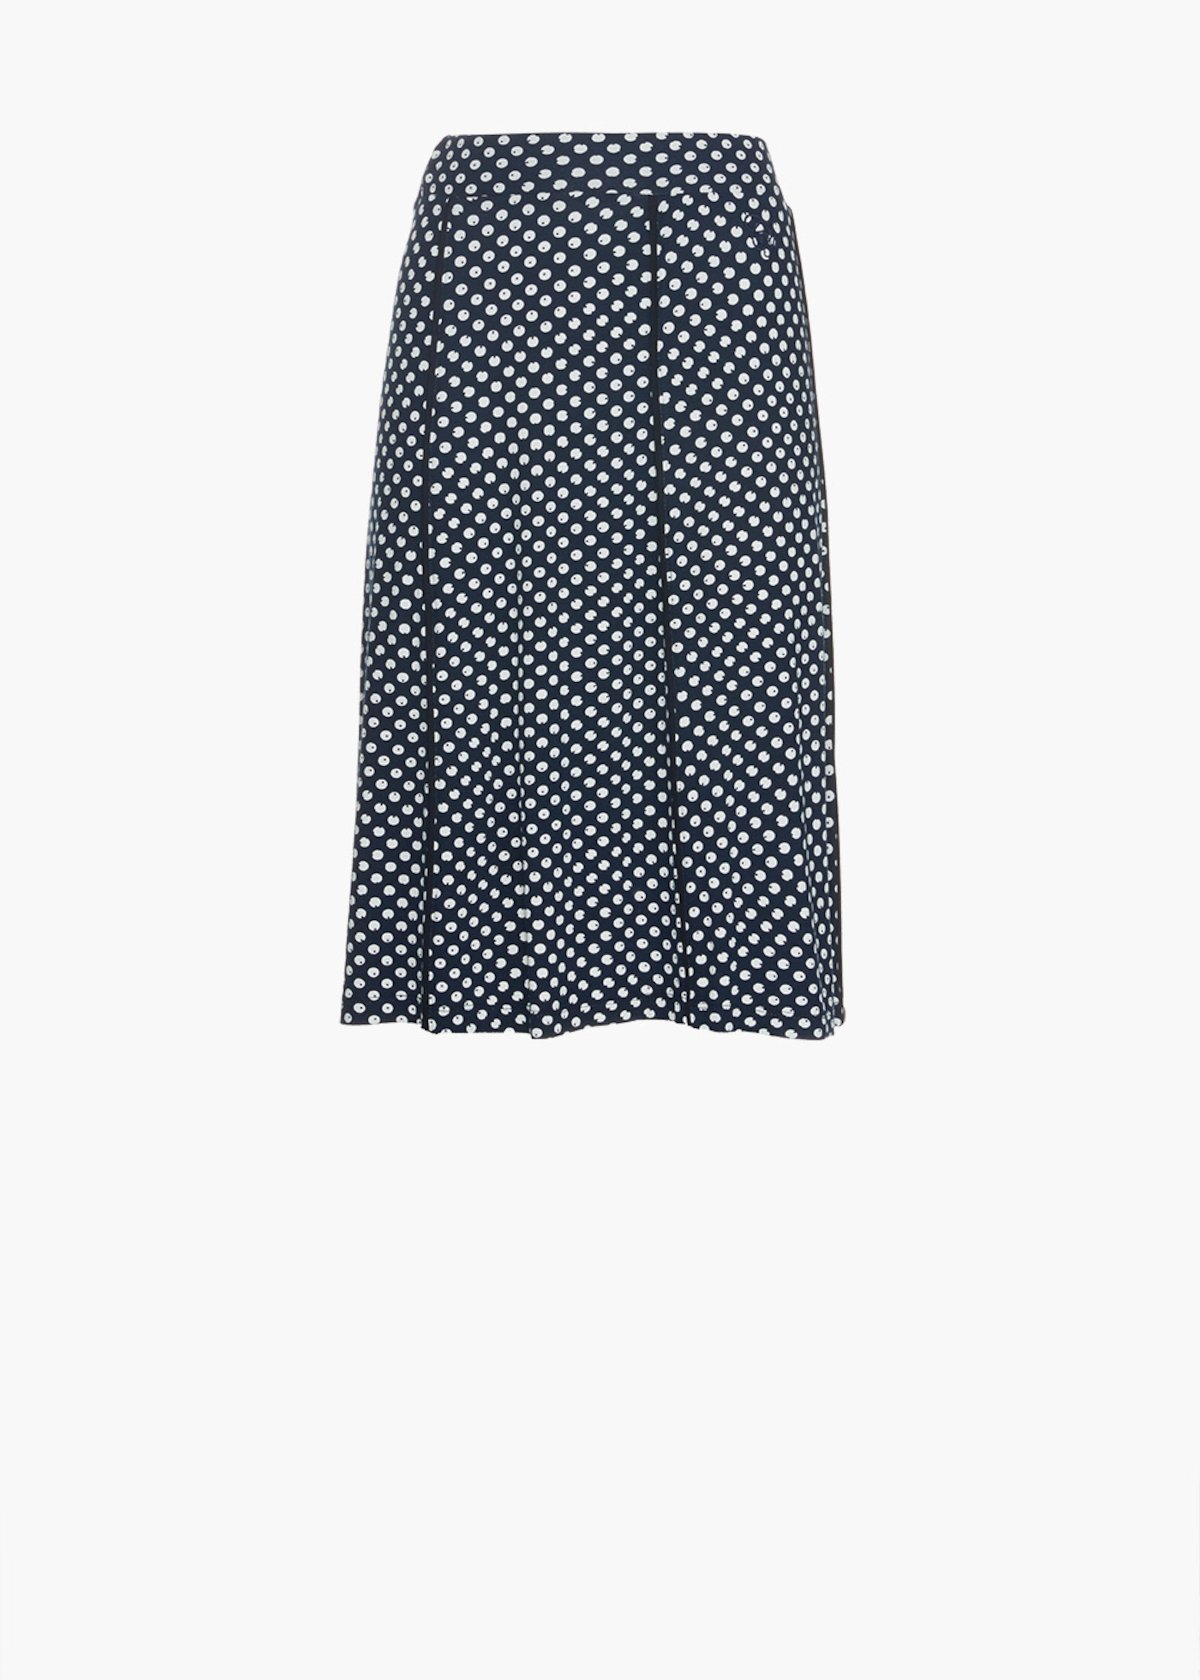 Skirt Goldys in all over printed jersey - Medium Blue / White Pois - Woman